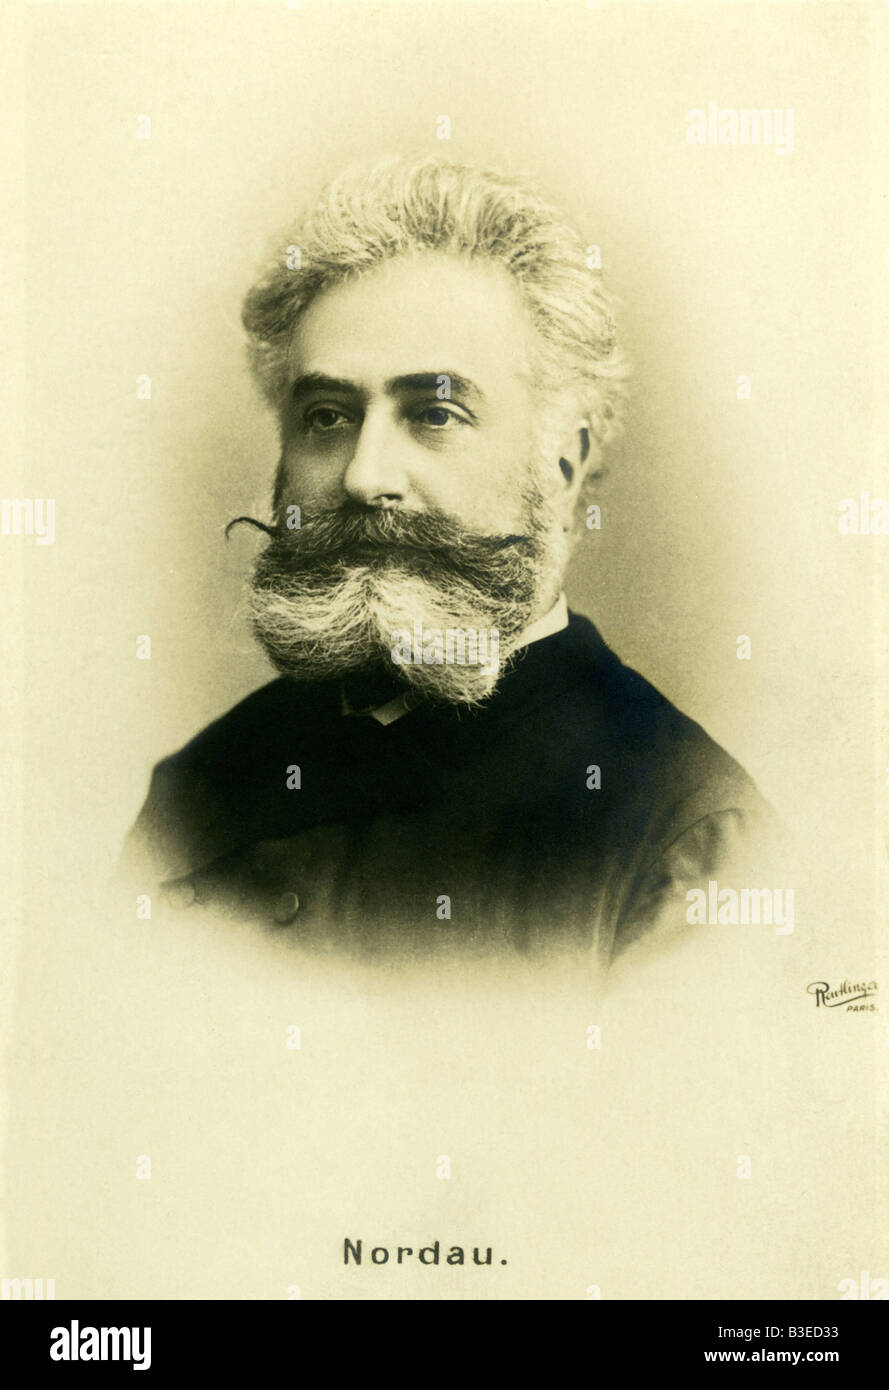 Nordau, Max, 29.7.1849 - 23.1.1923, Jewish/Hungarian physician and author/writer, portrait, picture postcard by - Stock Image